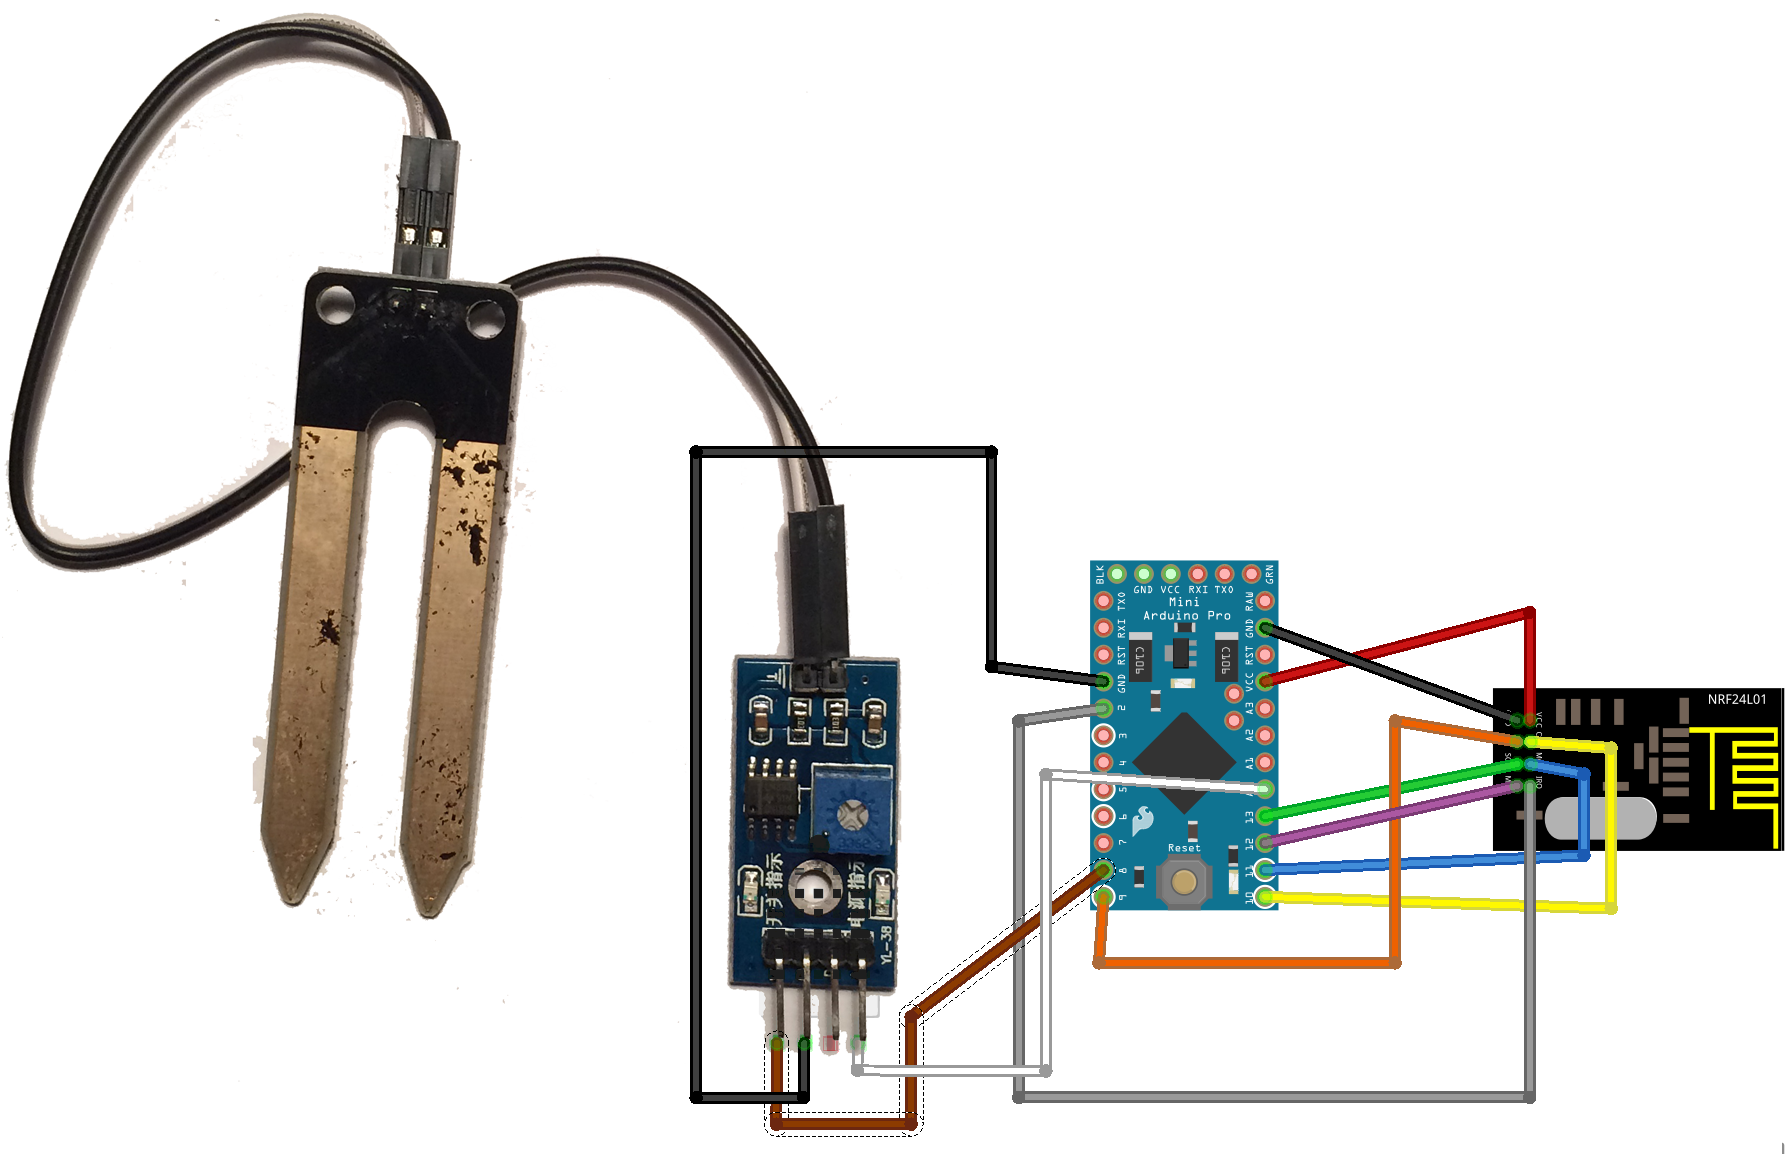 Swell Add A Soil Moisture Sensor To Domoticz Home Improvement Hobby Wiring Cloud Uslyletkolfr09Org